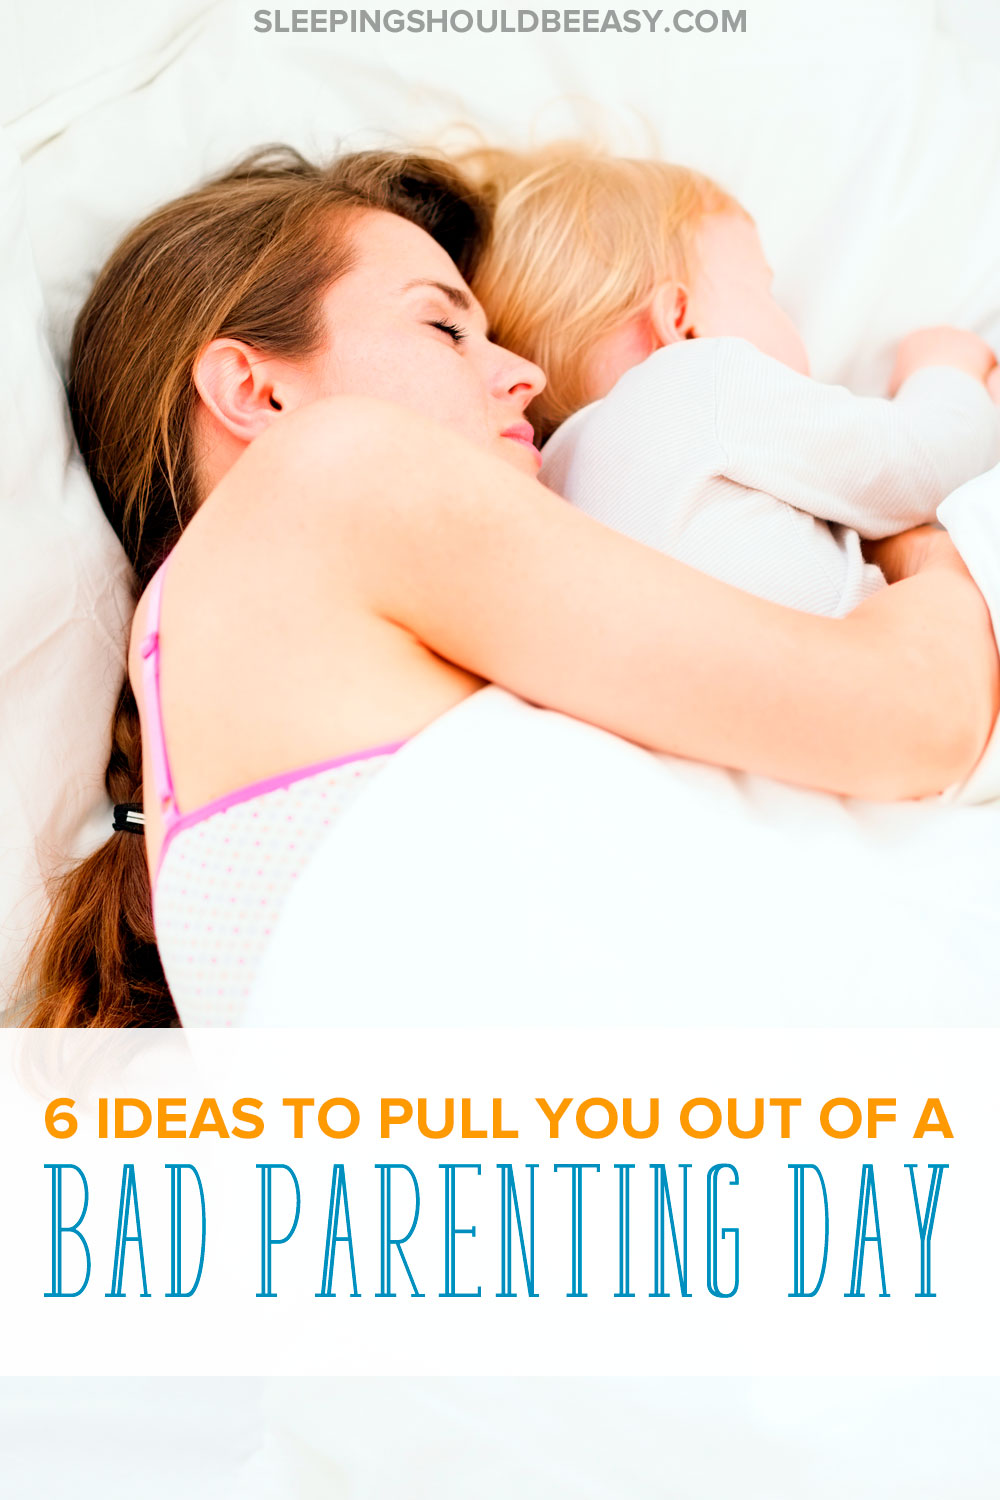 Having a bad parenting day? You're not alone. Check out these 6 ideas to pull yourself out from a bad day you're having with the kids.